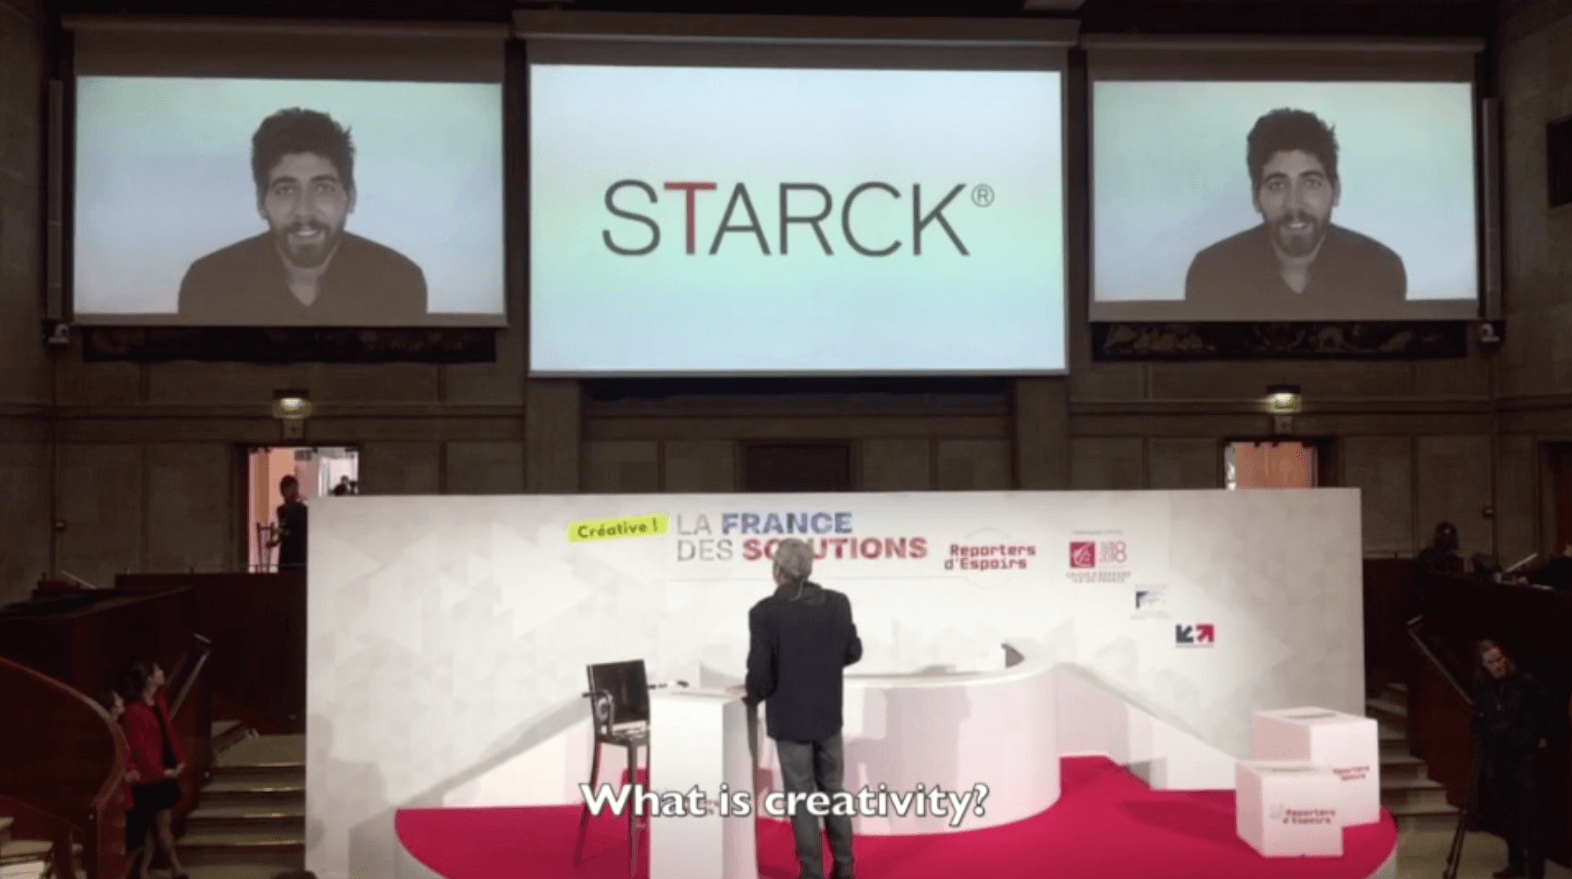 Philippe Starck presented a definition of creativity at La France des Solutions 2017 -